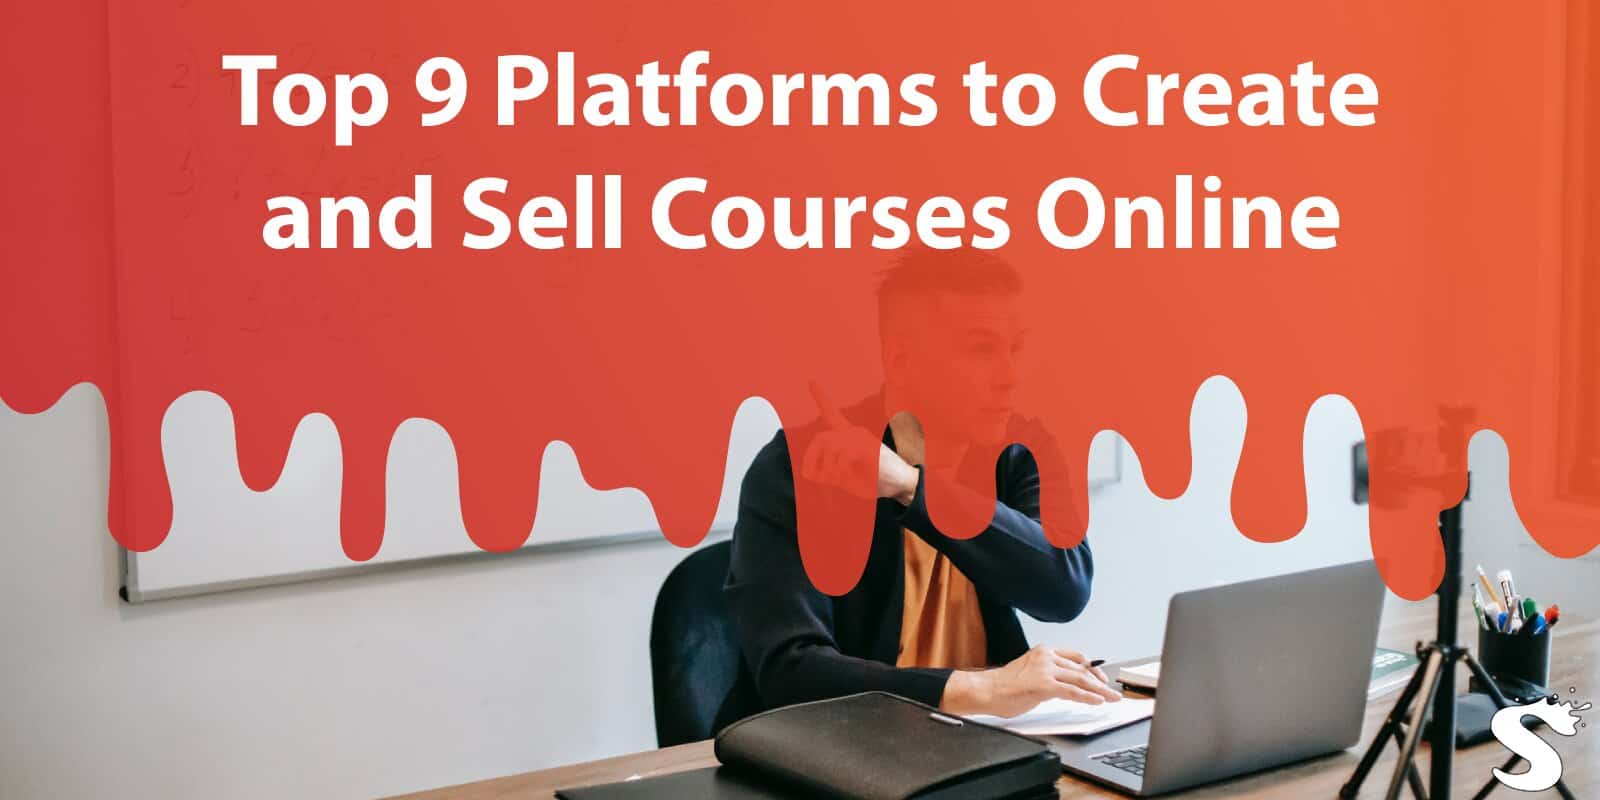 Top 9 Platforms to Create and Sell Courses Online: Make Money While Sharing Your Knowledge